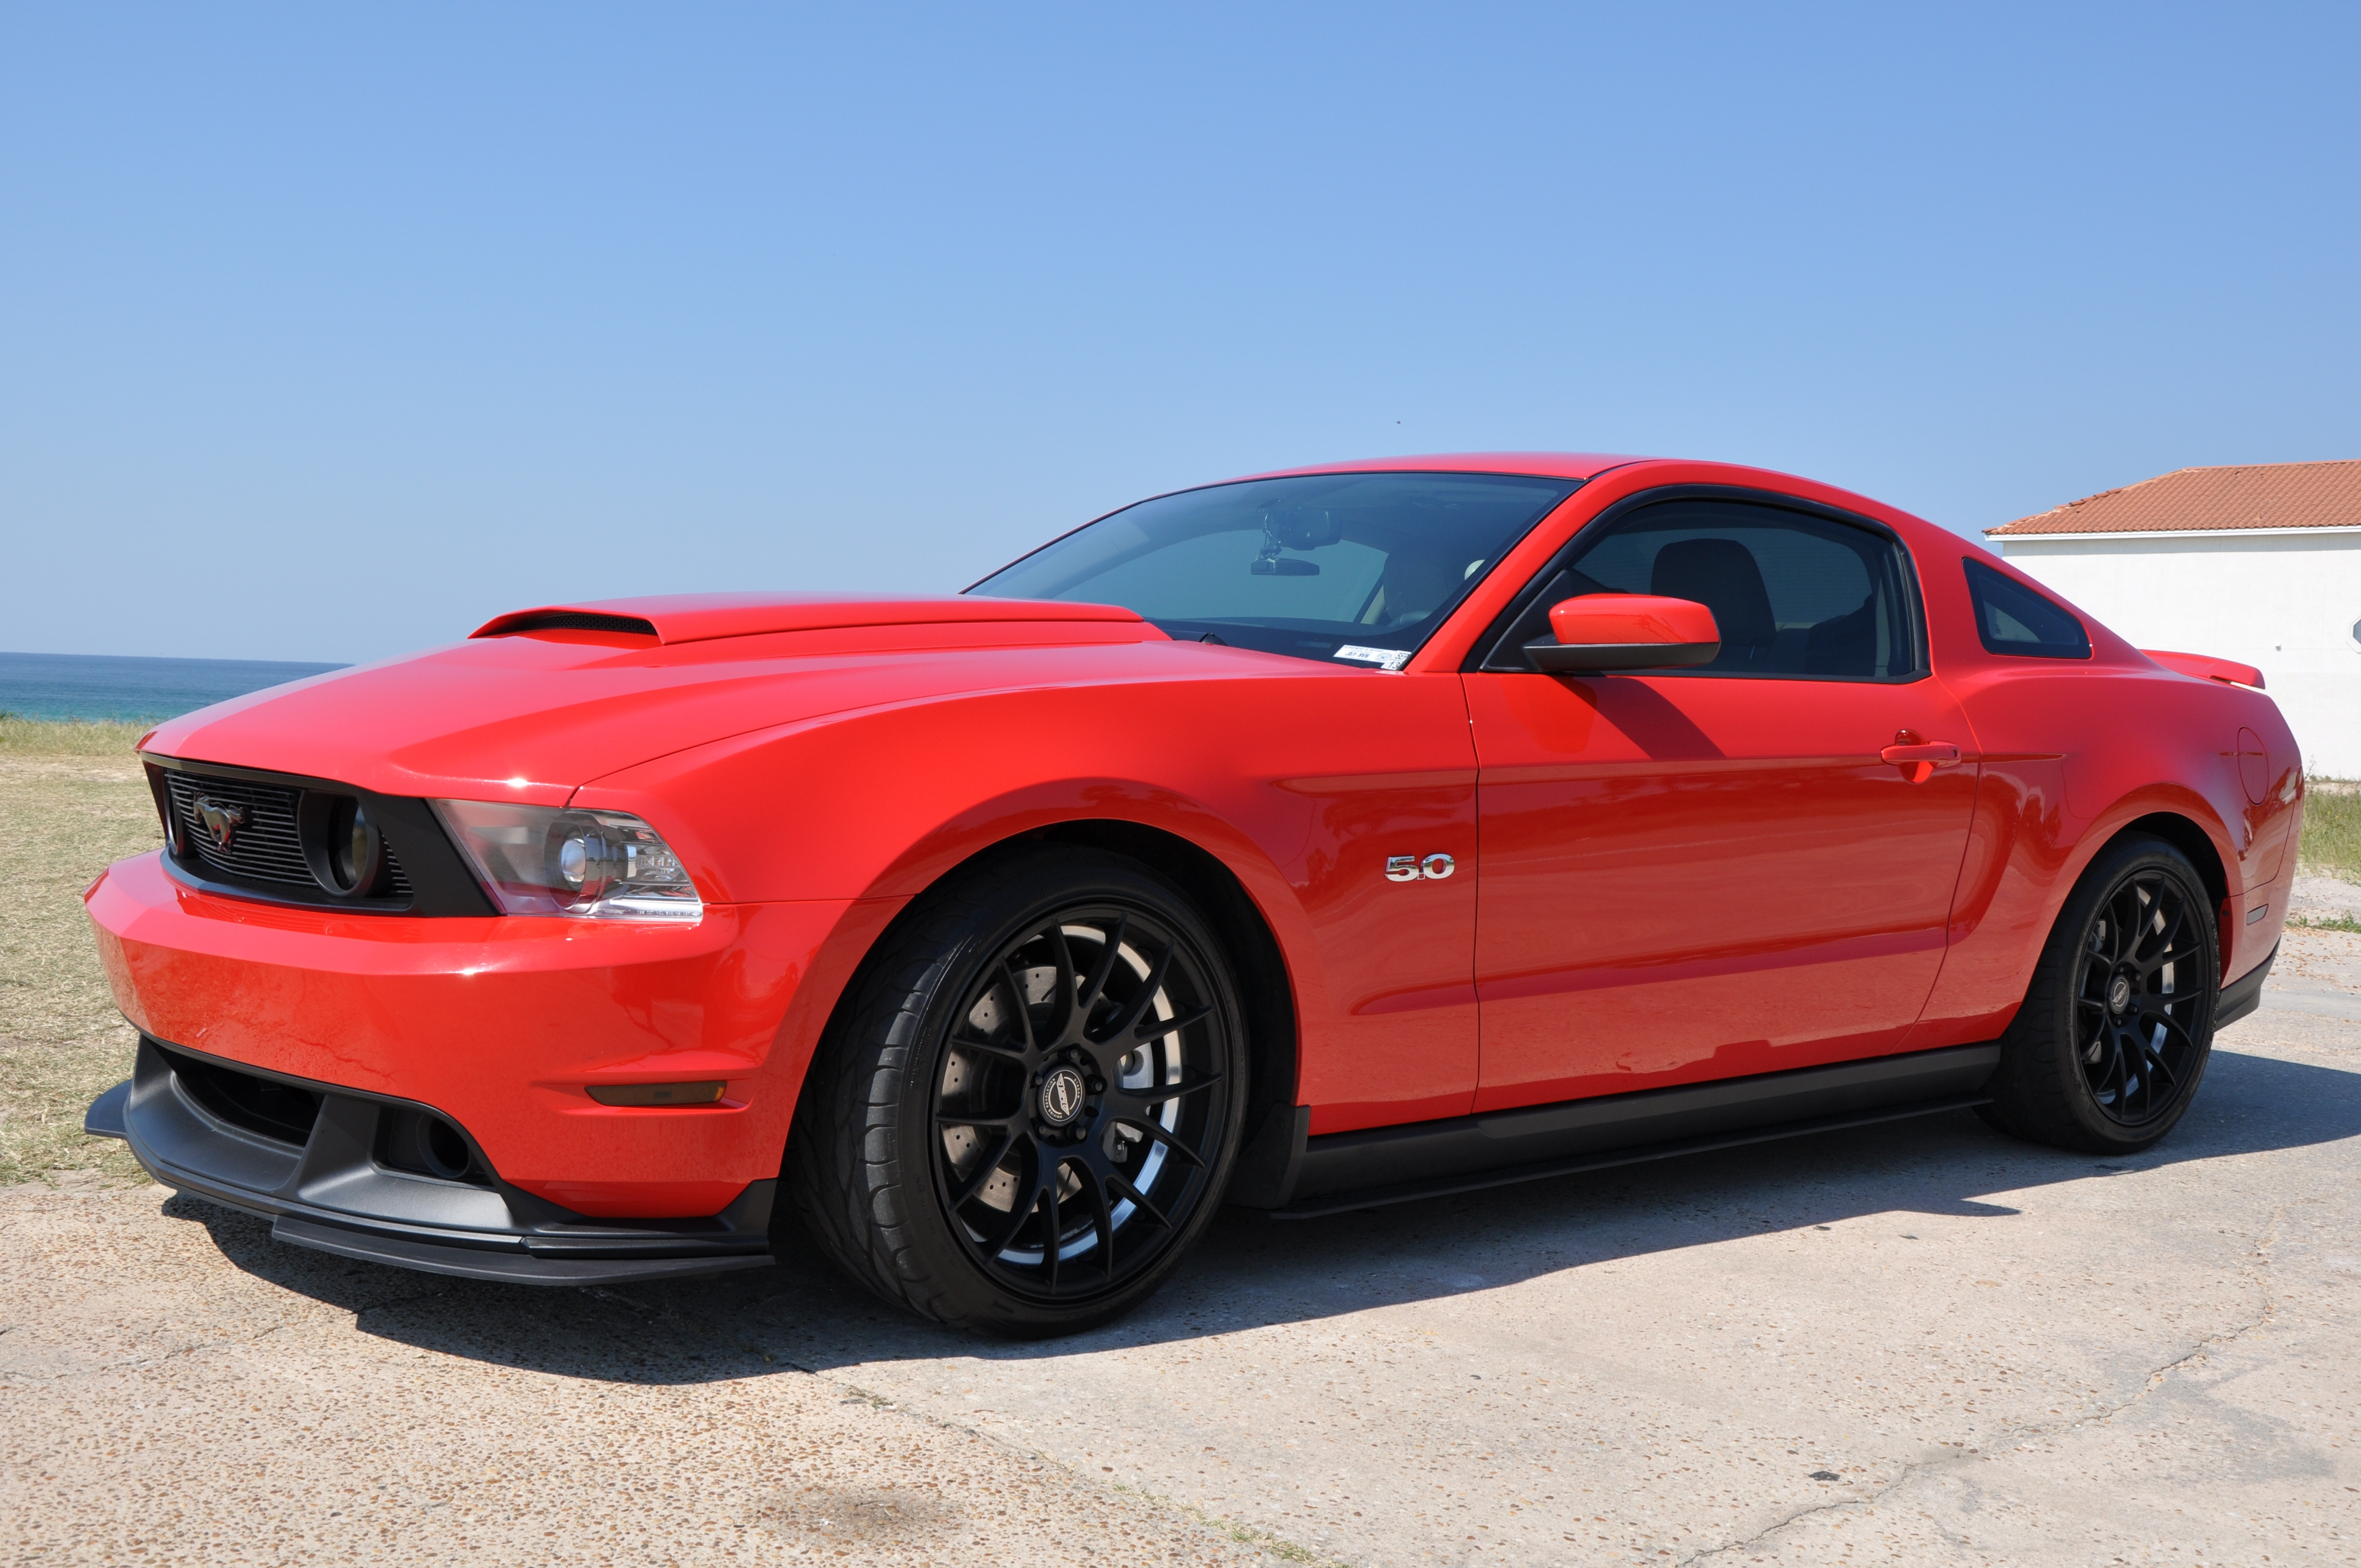 2014 ford mustang 0 60 time autos weblog. Black Bedroom Furniture Sets. Home Design Ideas